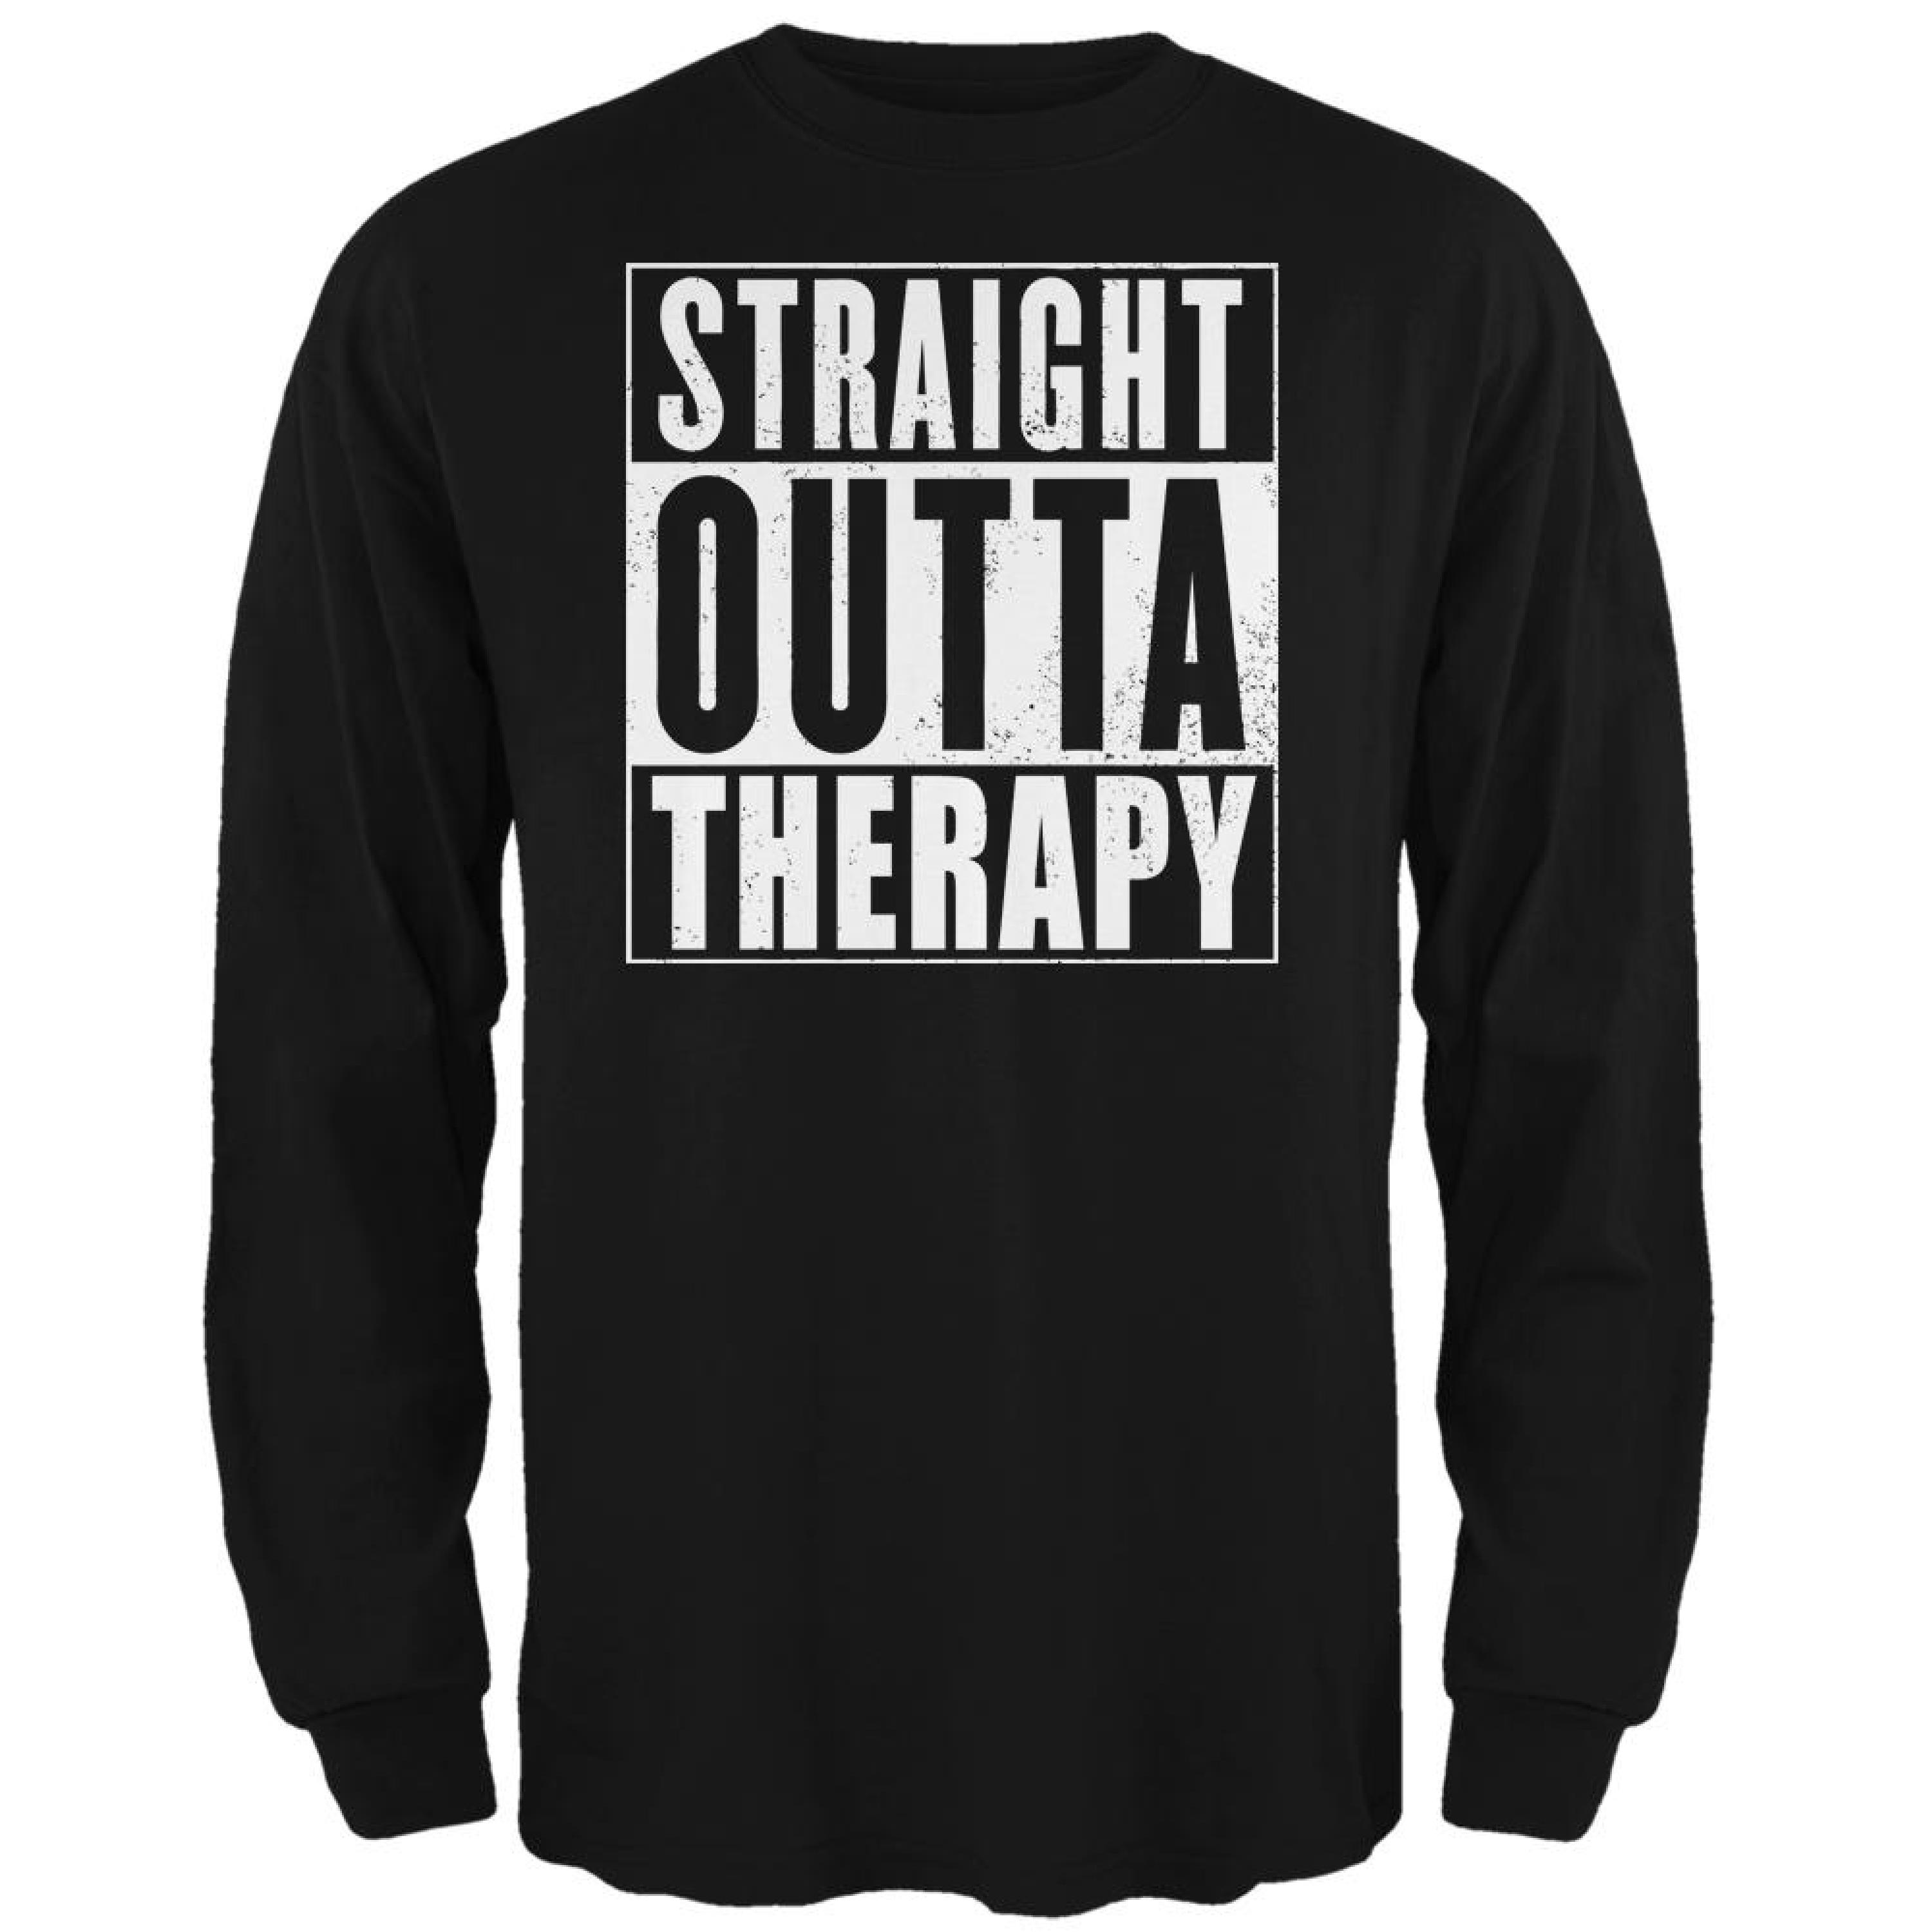 Straight Outta Therapy Black Adult Long Sleeve T-Shirt